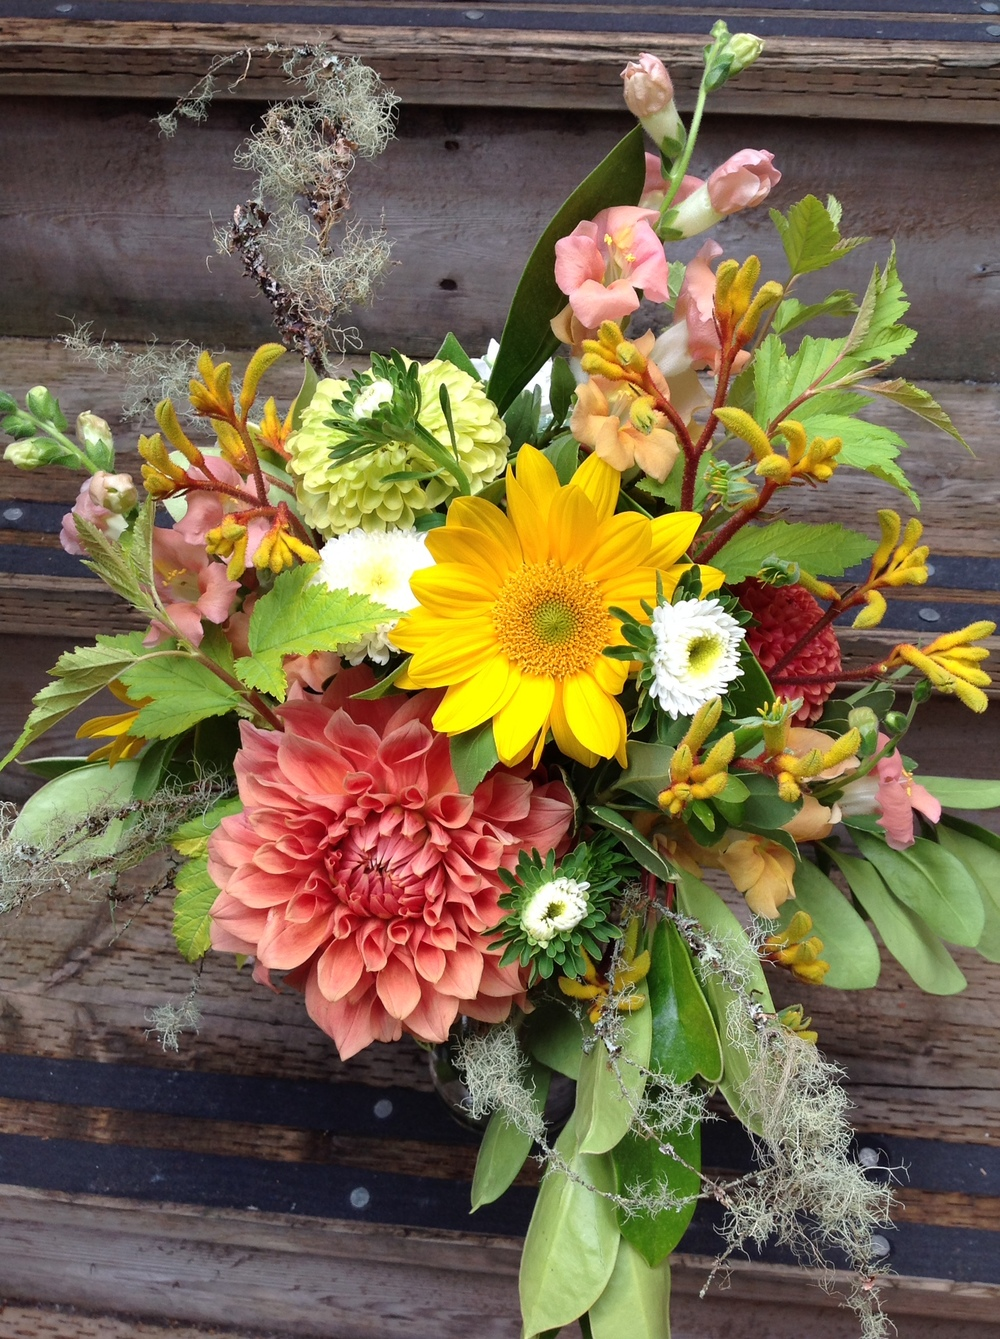 9. Summer/Autumn Seasonal Mix Bouquet